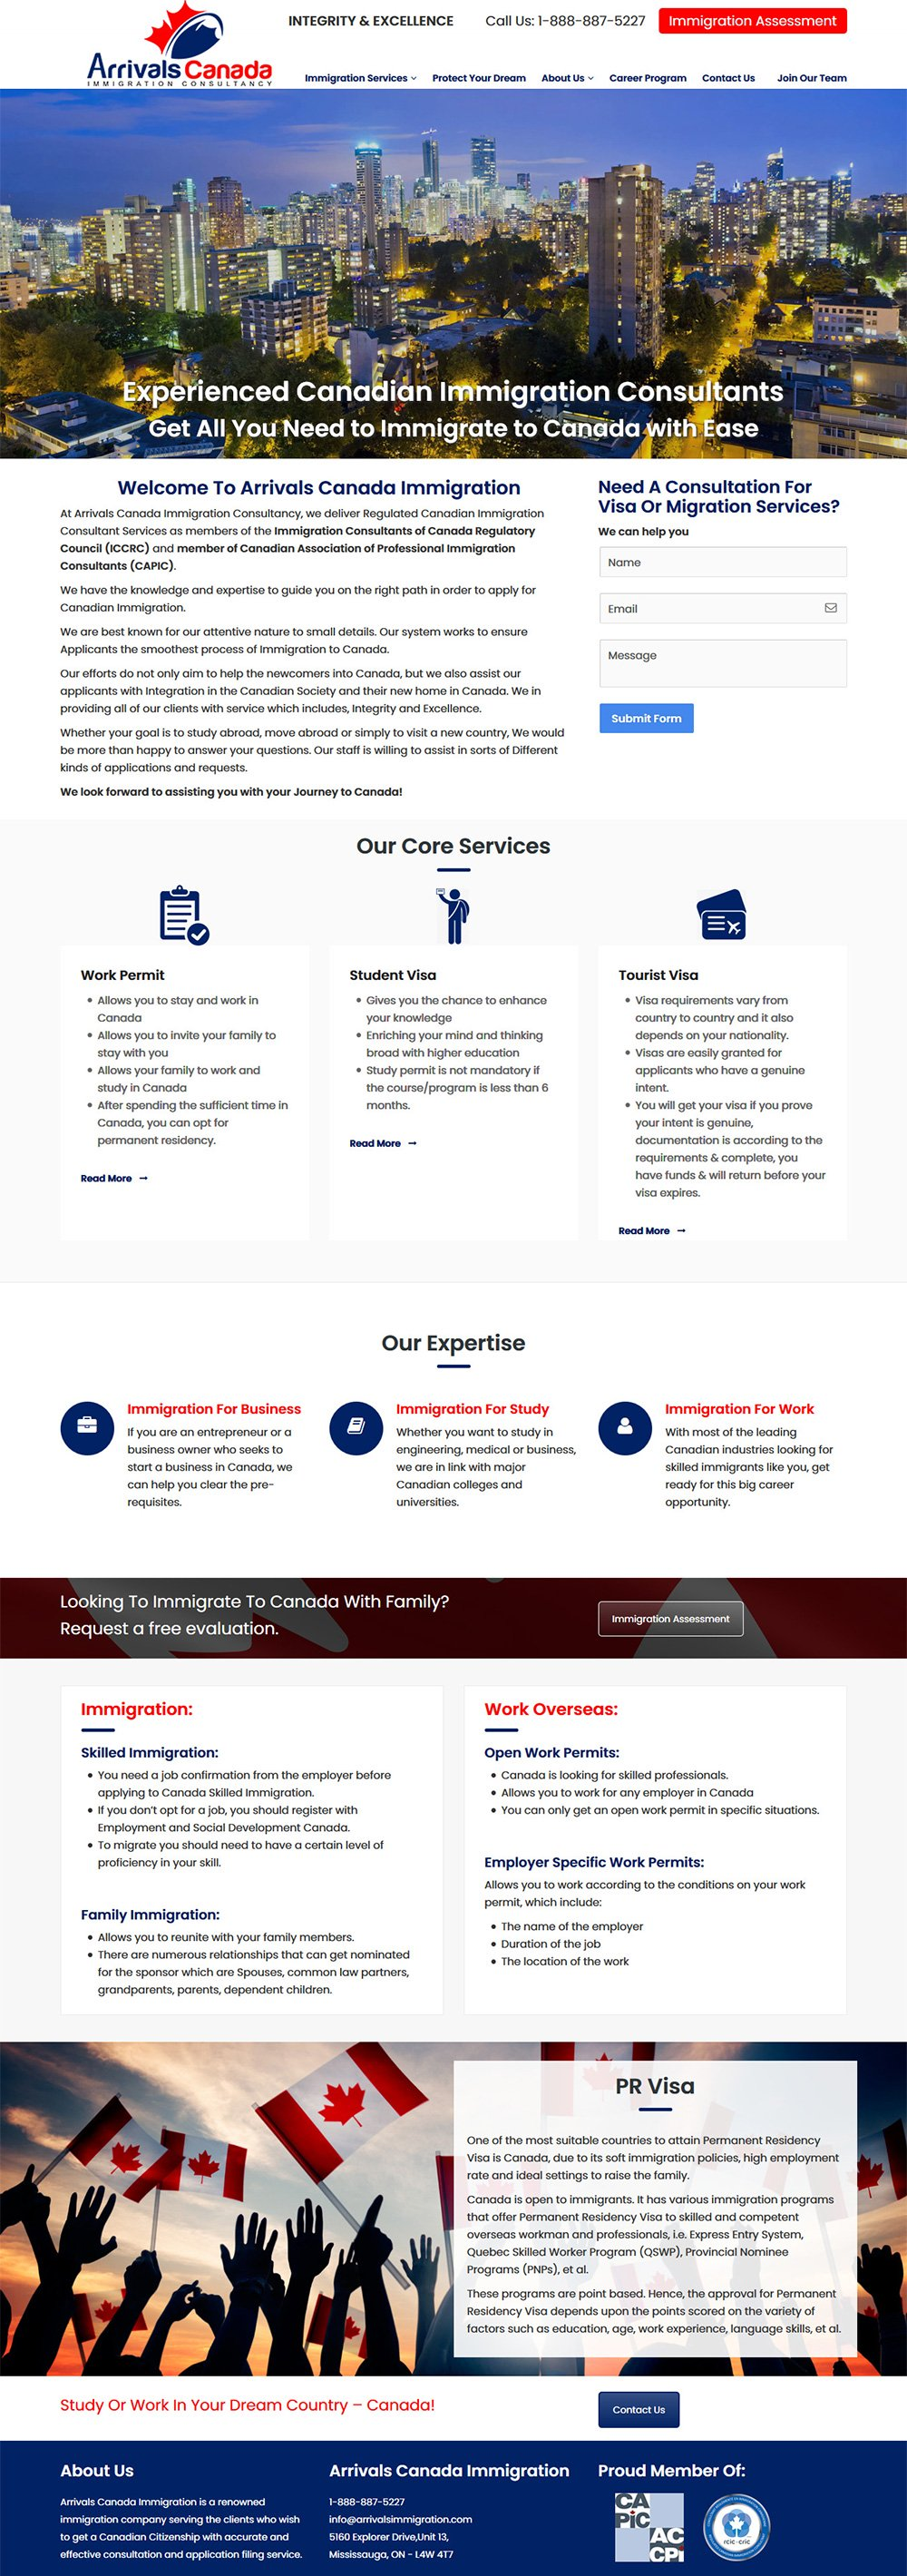 Website Development Burlington, Ontario